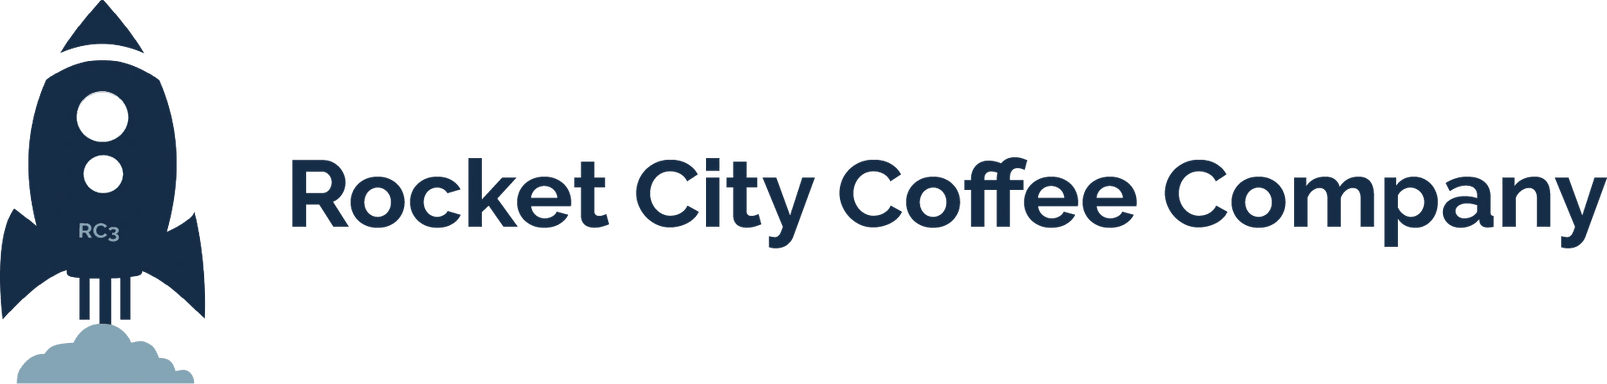 Rocket City Coffee Company